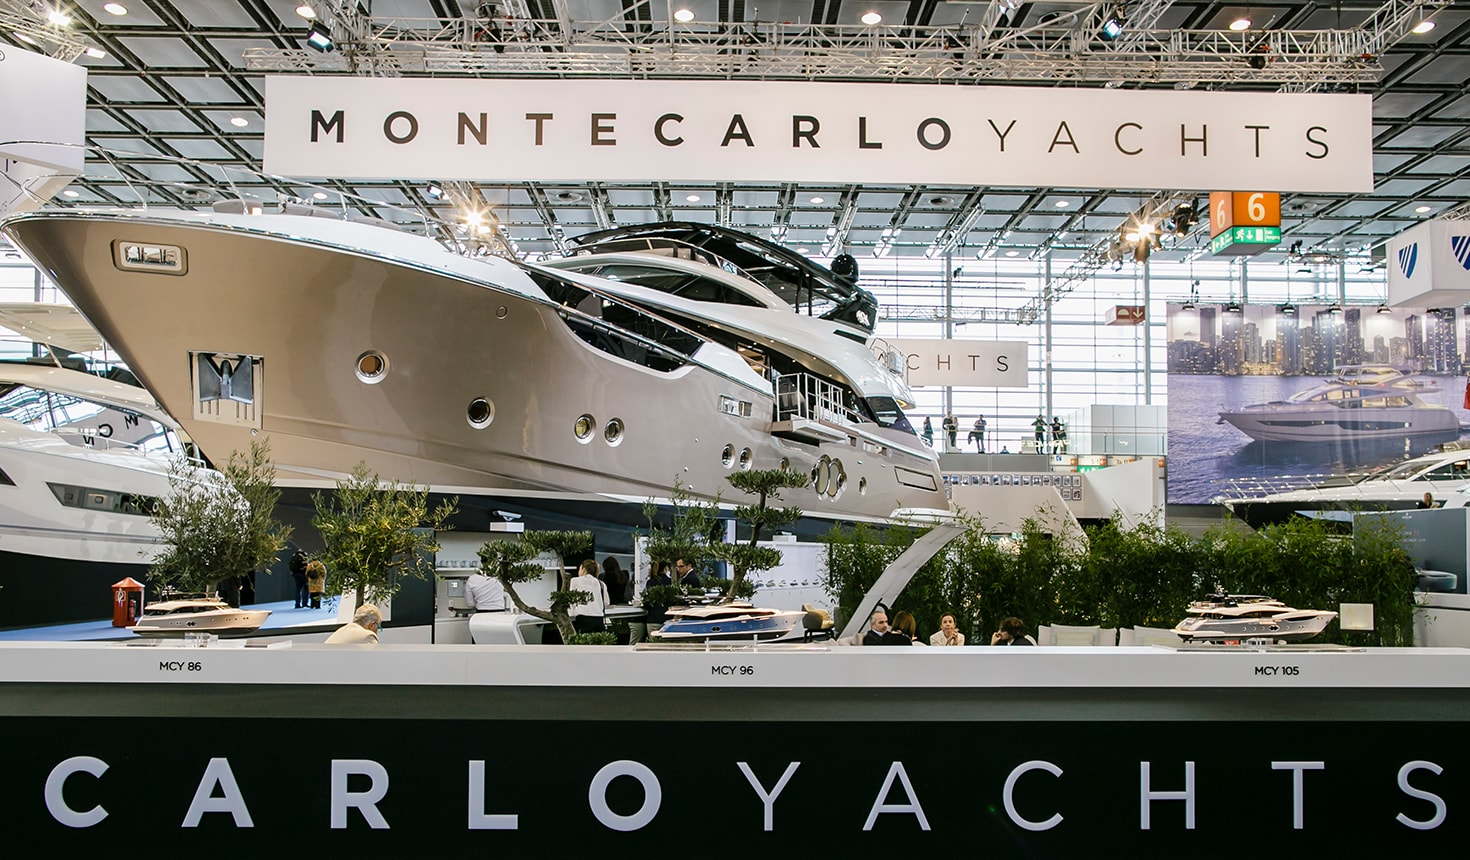 GIORGETTI AT THE DÜSSELDORF BOAT SHOW WITH MONTE CARLO YACHTS - Giorgetti 1